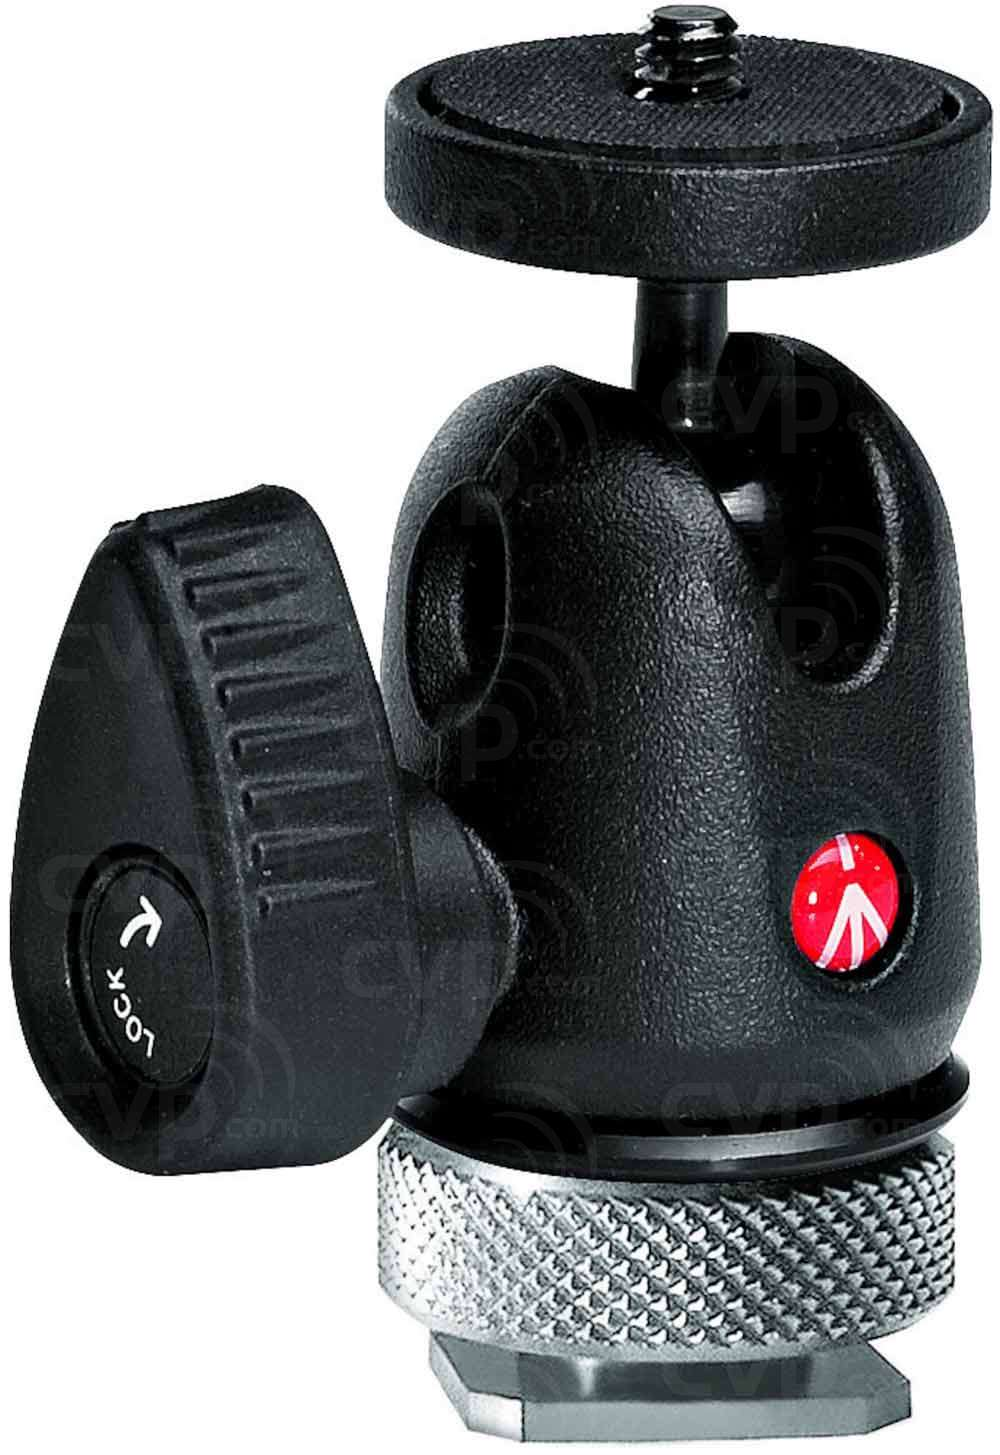 Manfrotto 492LCD (492-LCD) Micro ball head with hot shoe mount